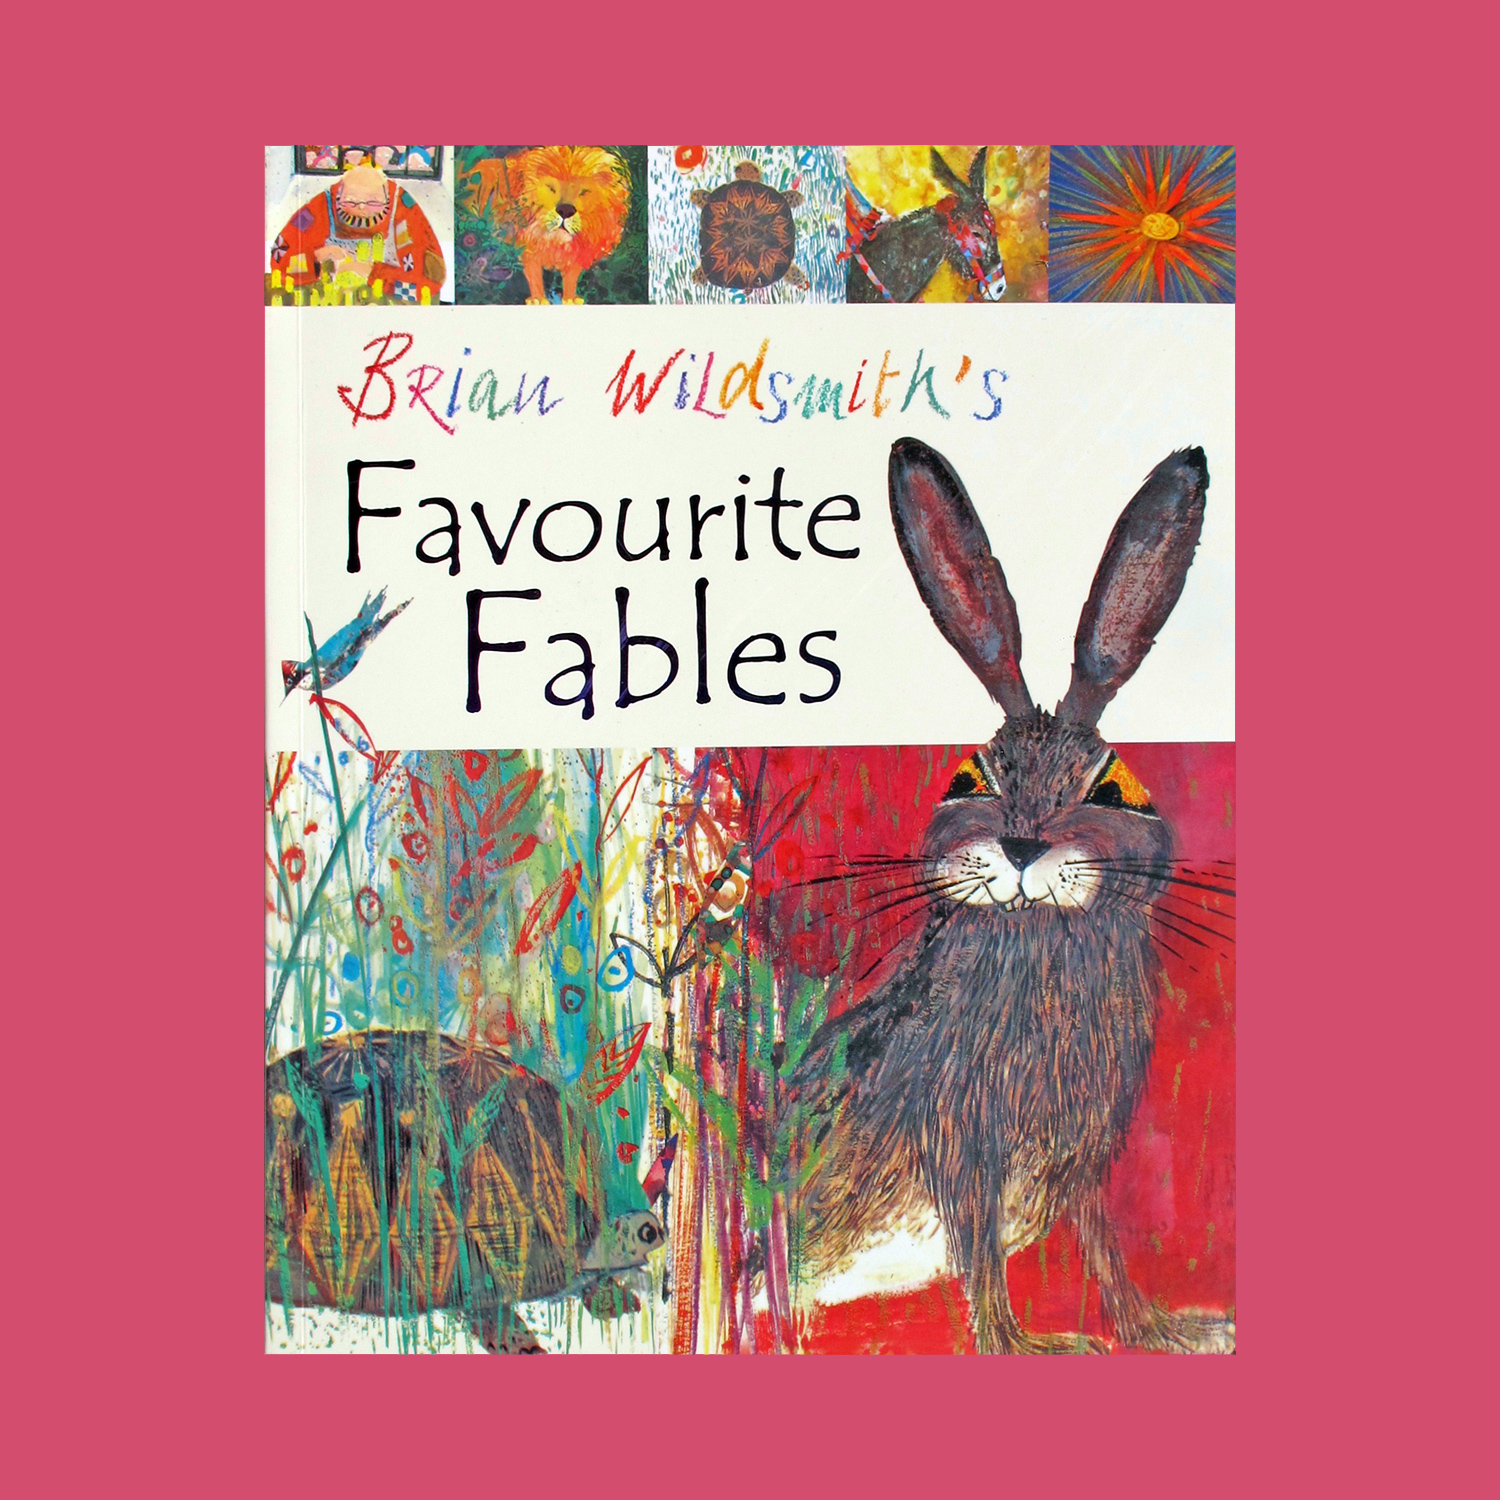 """FAVOURITE FABLES - A compilation of Brian's beautiful La Fontaine's fables from the 60s2008""""A lovely collection of five well-loved fables for parents and children to share simply retold and sumptuously illustrated by Brian Wildsmith, the internationally acclaimed picture-book writer and artist. We meet a boastful hare as he challenges a slow-and-steady tortoise to a race. We see how a bag of coins threatens to rob a simple shoemaker of his happiness. We discover that the Sun's gentle warmth is more than a match for the North Wind's bluster. We join a miller, a boy, and a donkey on their eventful journey. And we witness a little rat's kindness and courage in helping a mighty lion. These are lovely stories for adults to share with children over and over again.""""Lovereading4kids"""